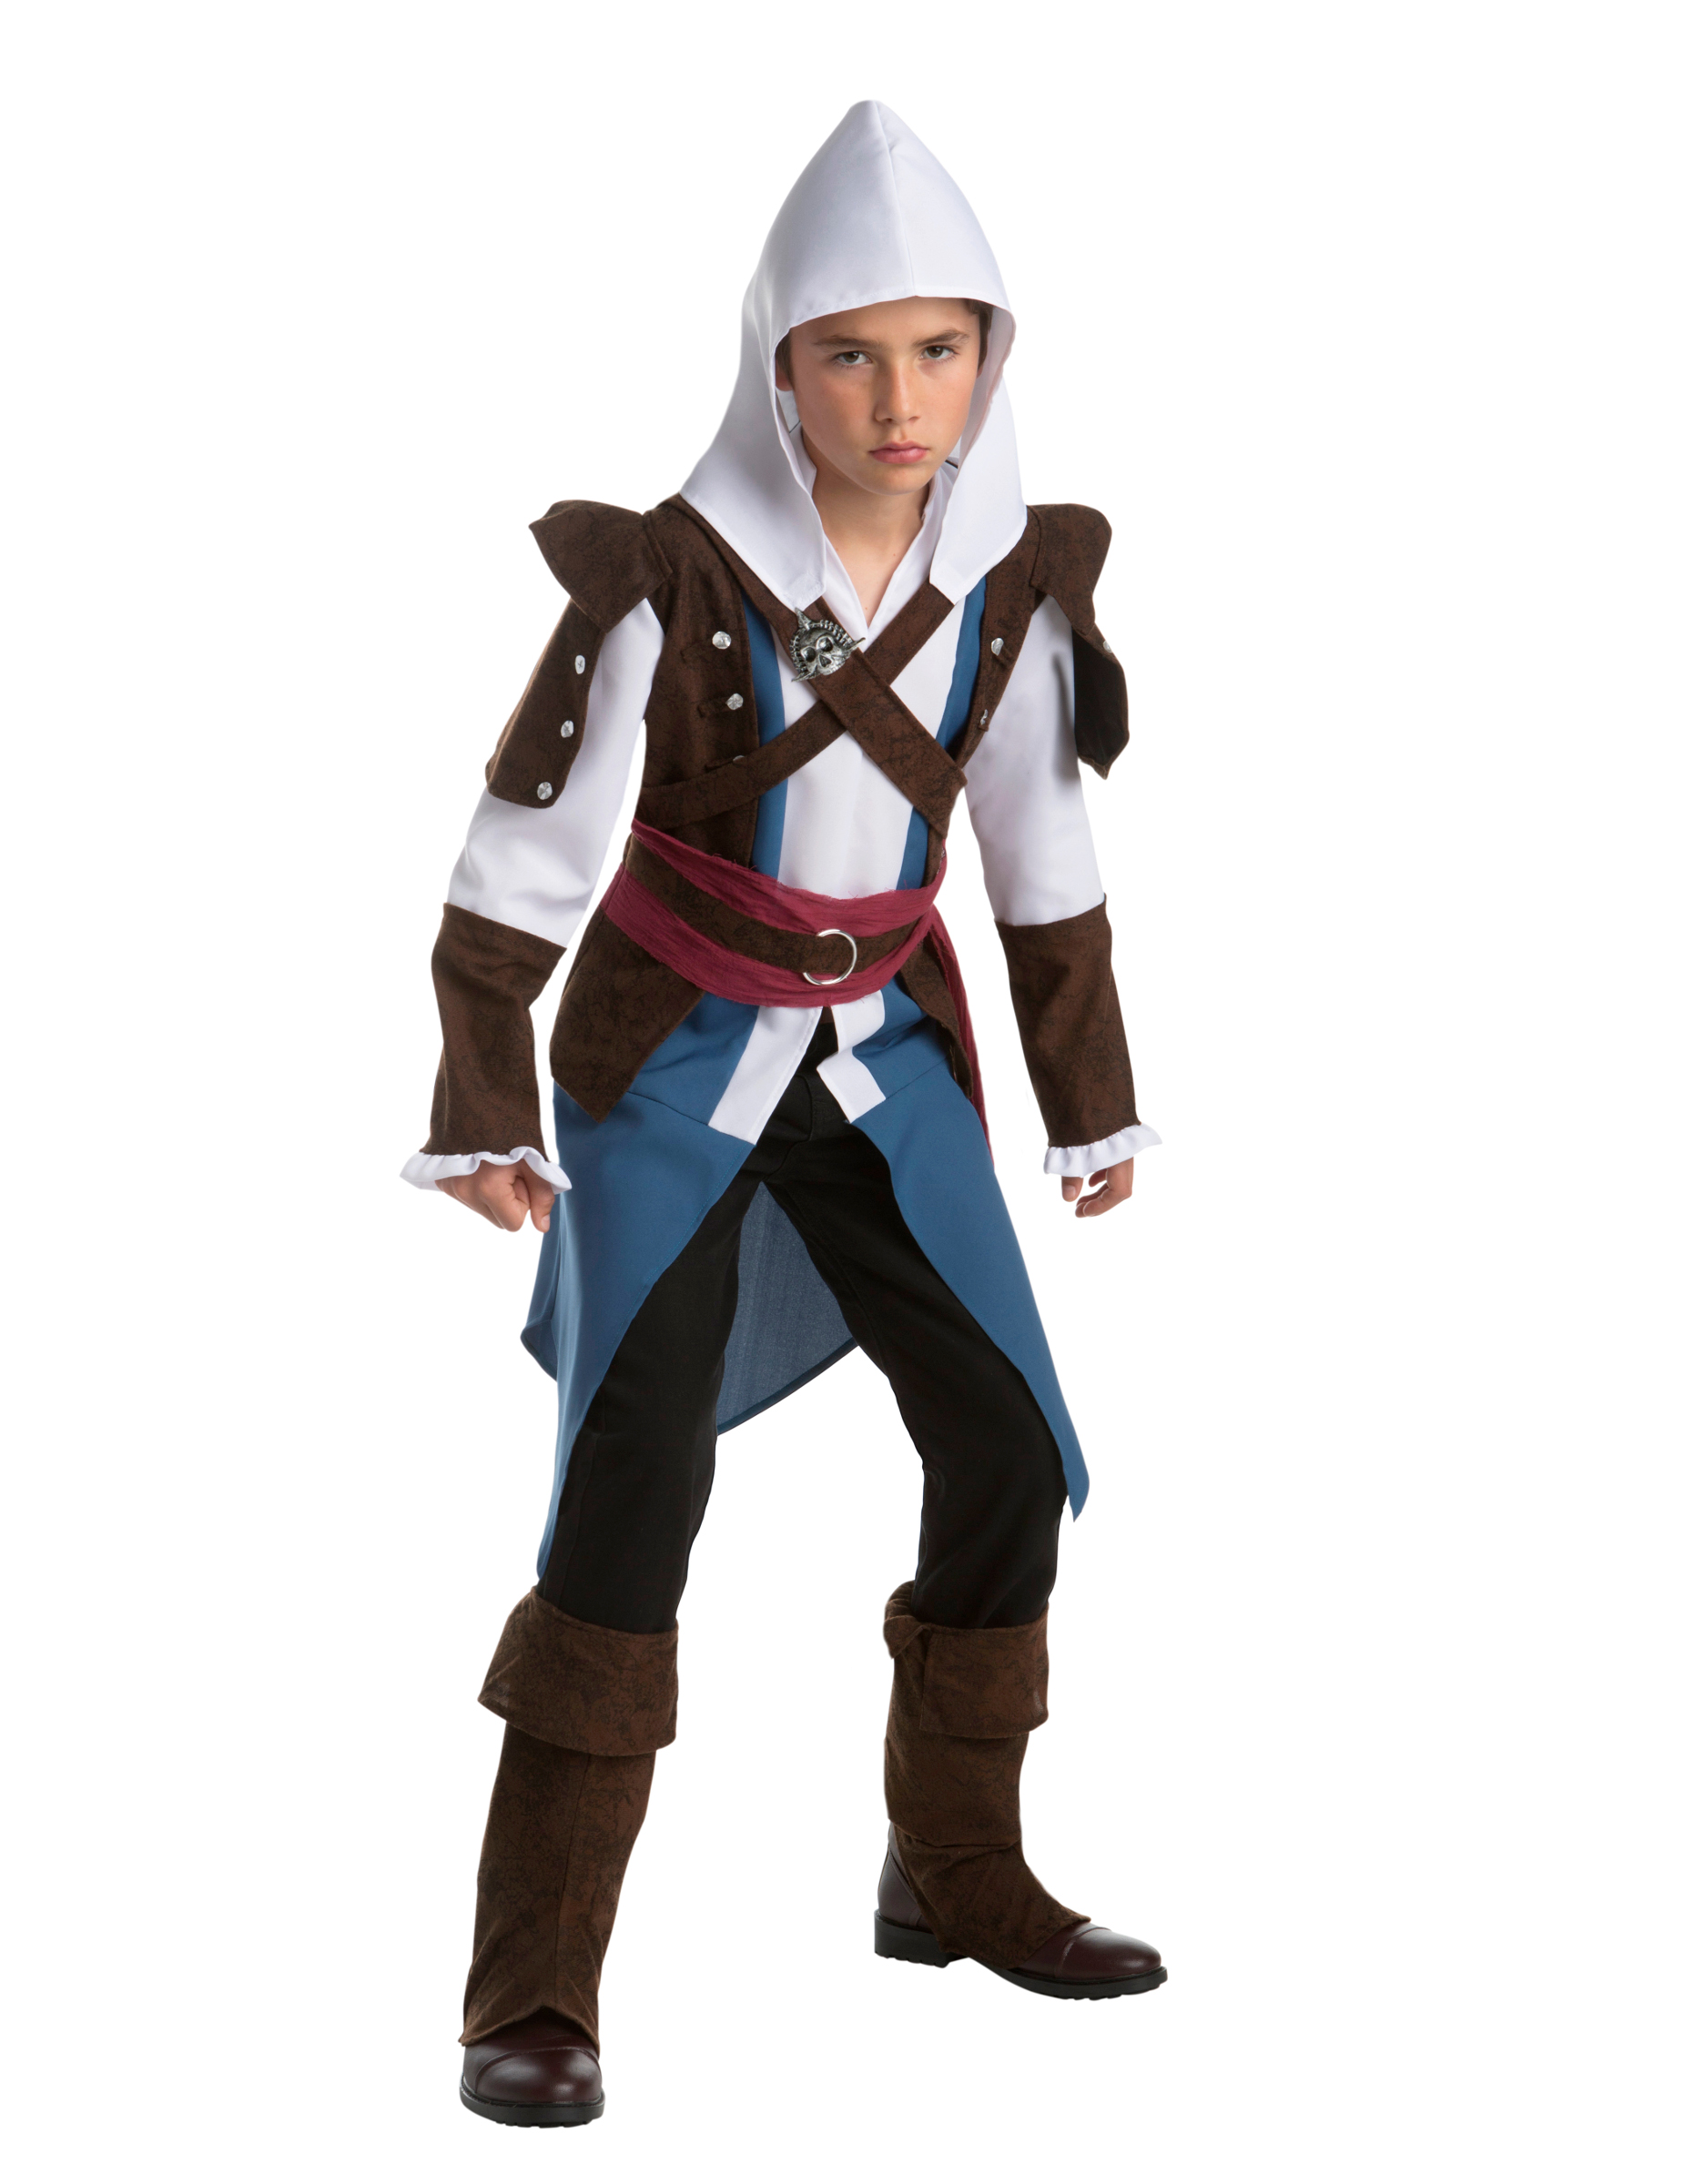 0987eb5dd69d1 Déguisement Edward classique Edward - Assassin s creed™Adolescent ...